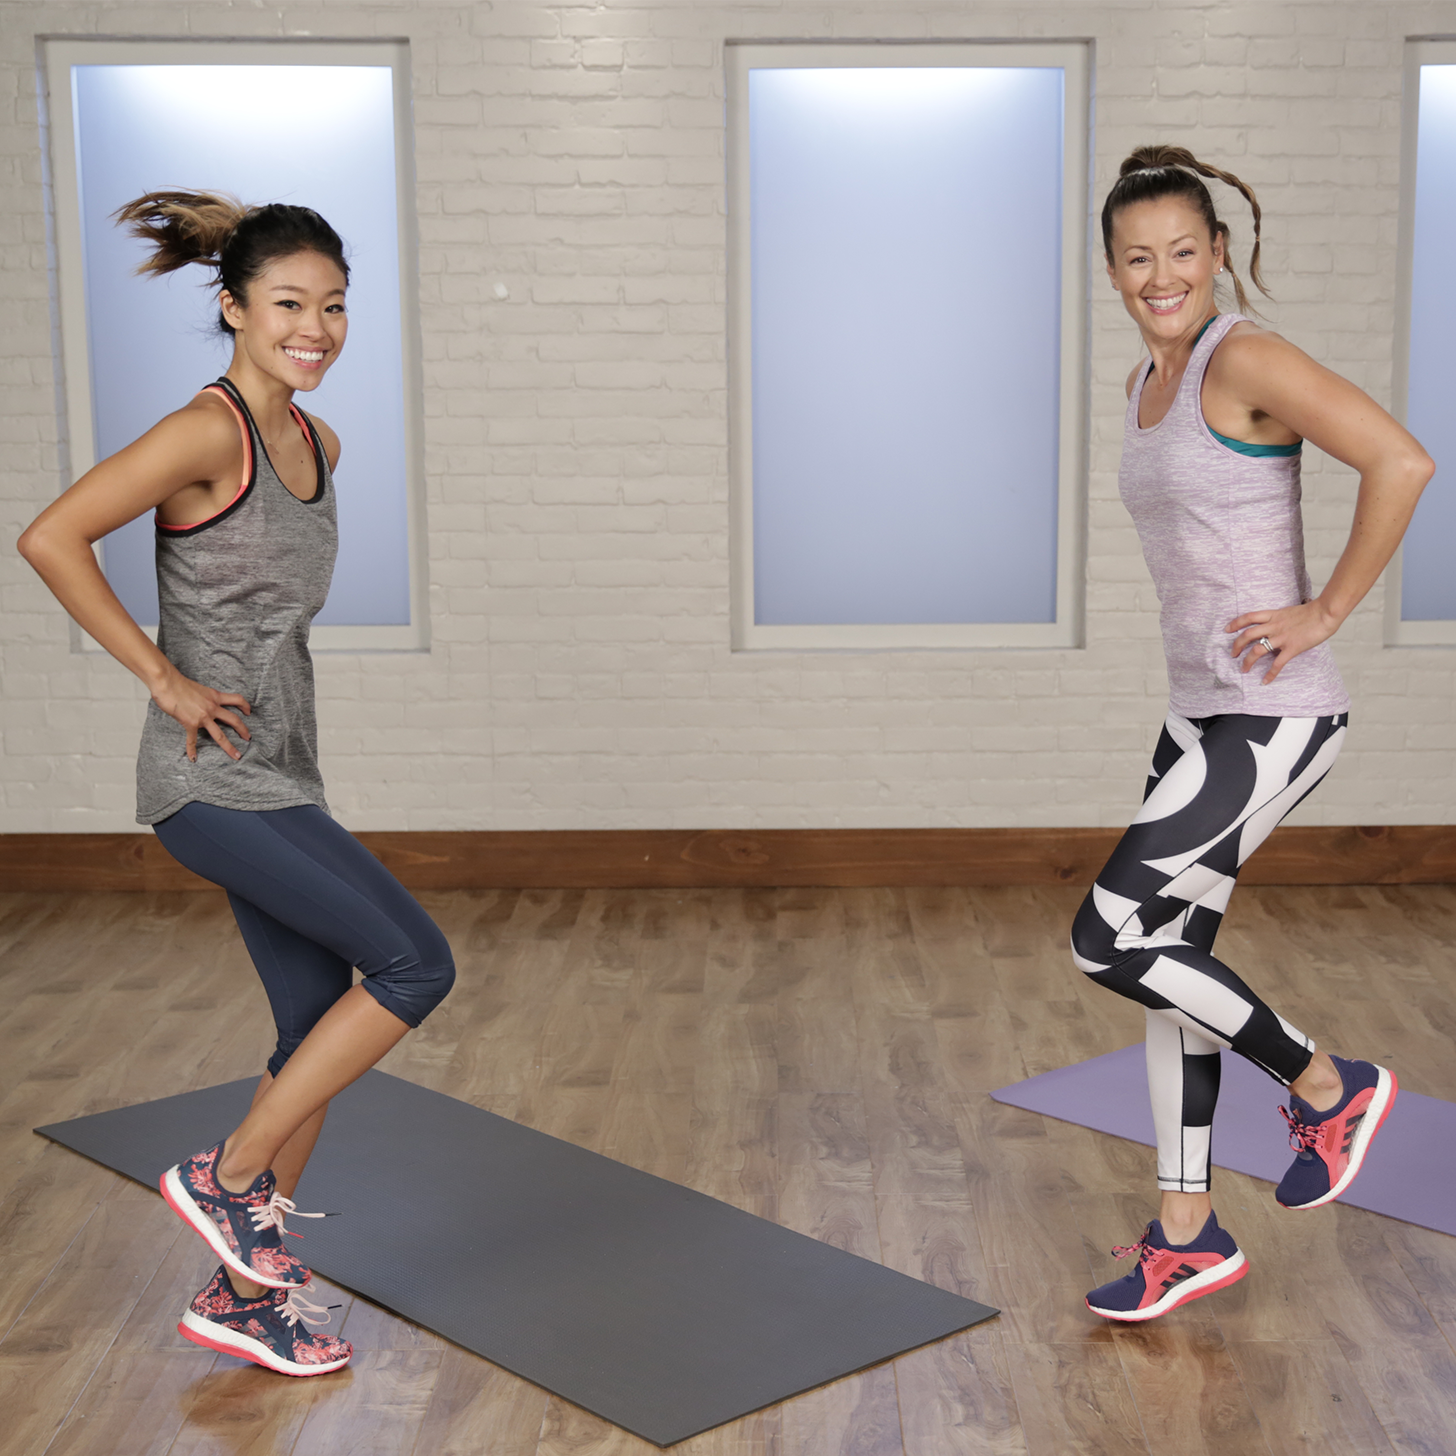 Strength Training For Runners 10-Minute Workout POPSUGAR Fitness